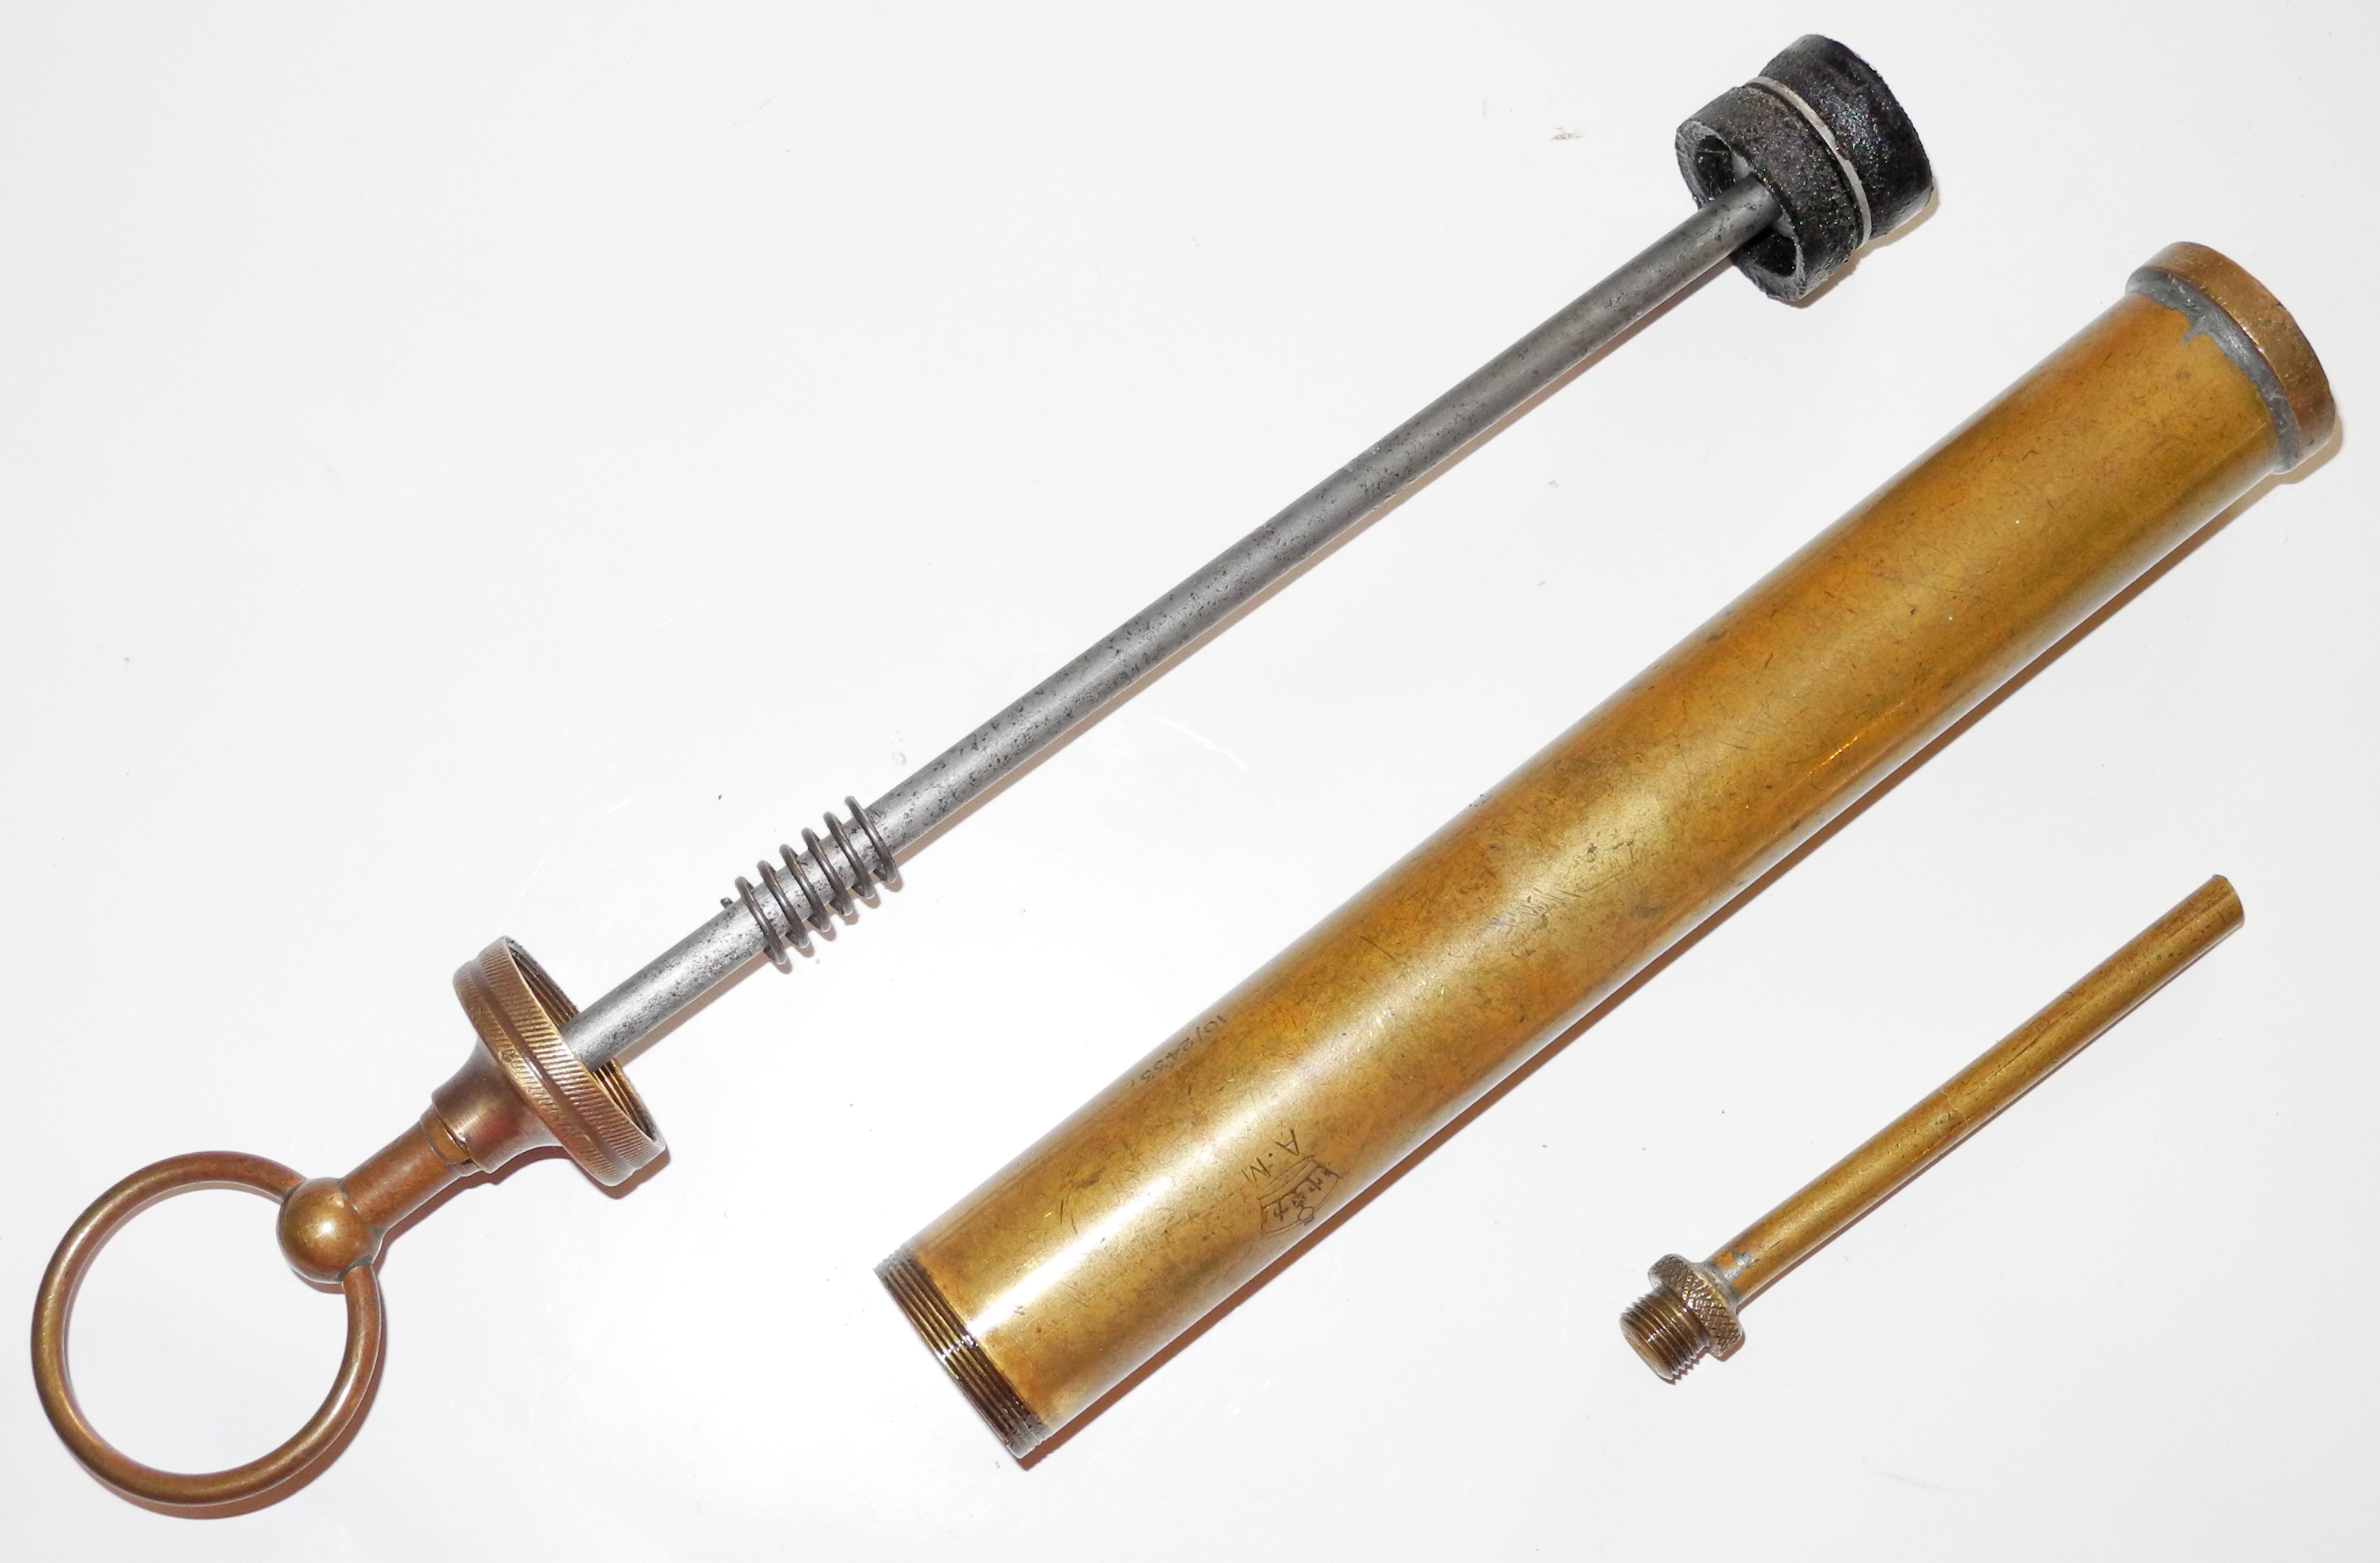 RAF mechanic's oil syringe/injector